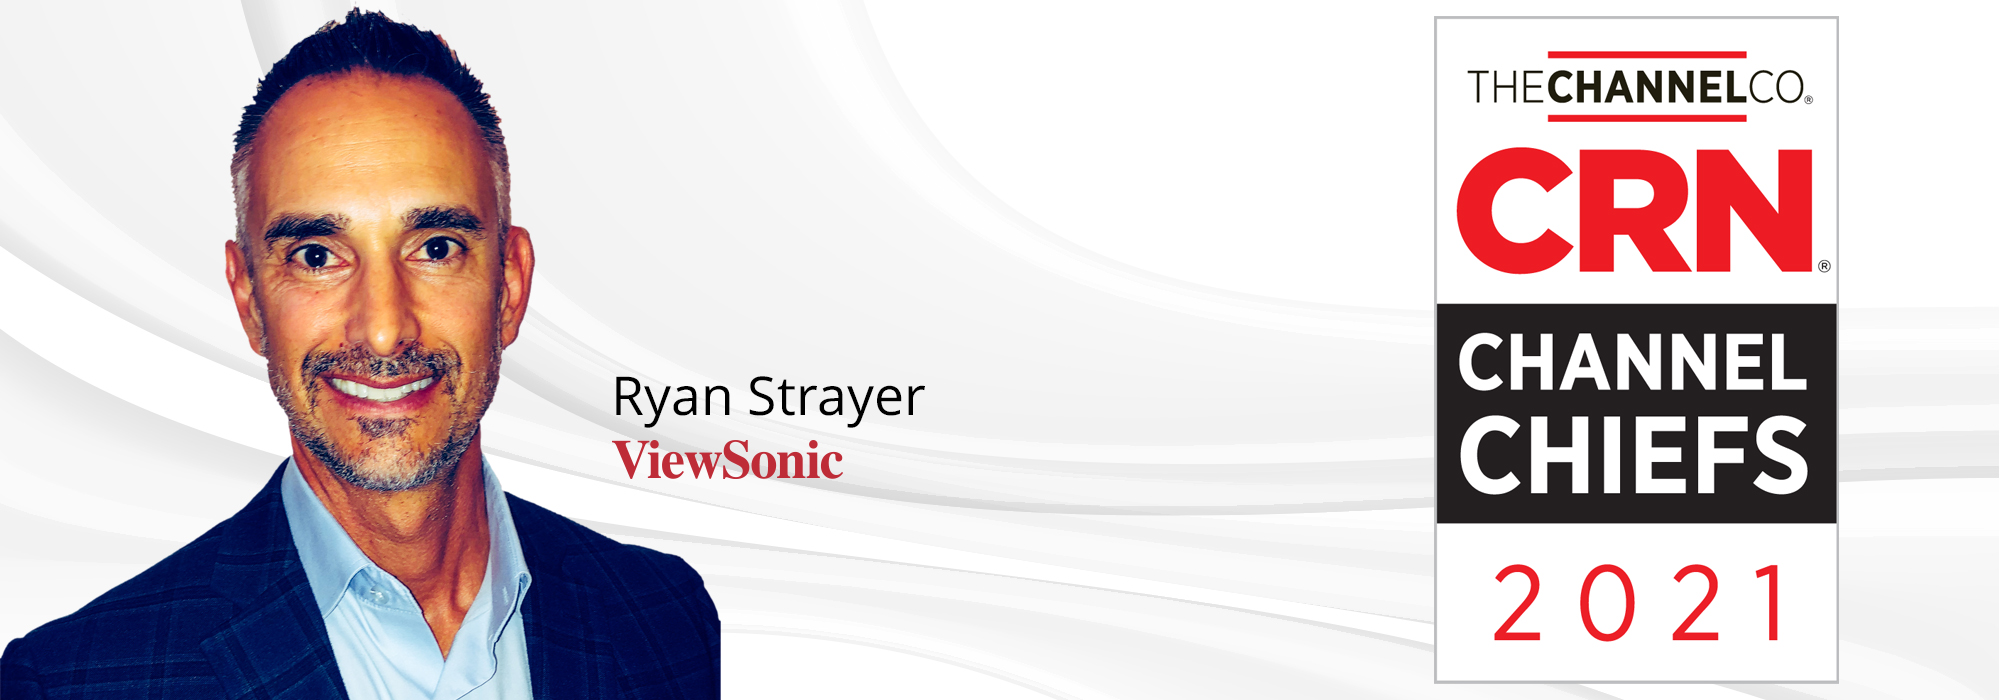 Ryan Strayer of ViewSonic Recognized as 2021 CRN Channel Chief